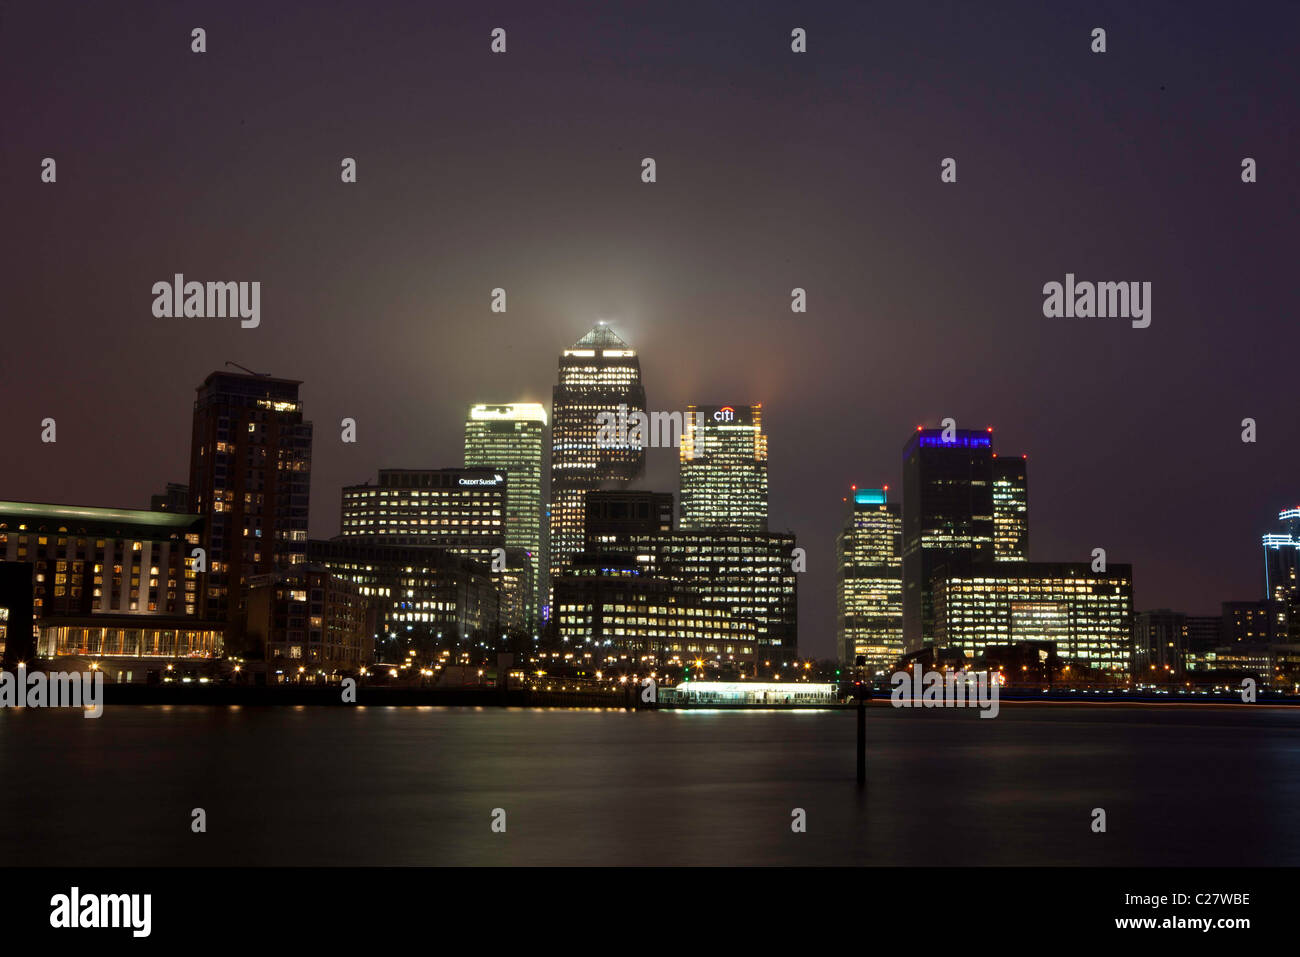 Docklands. Canary Wharf lit up at night, London. This is one of London's financial and business districts. - Stock Image